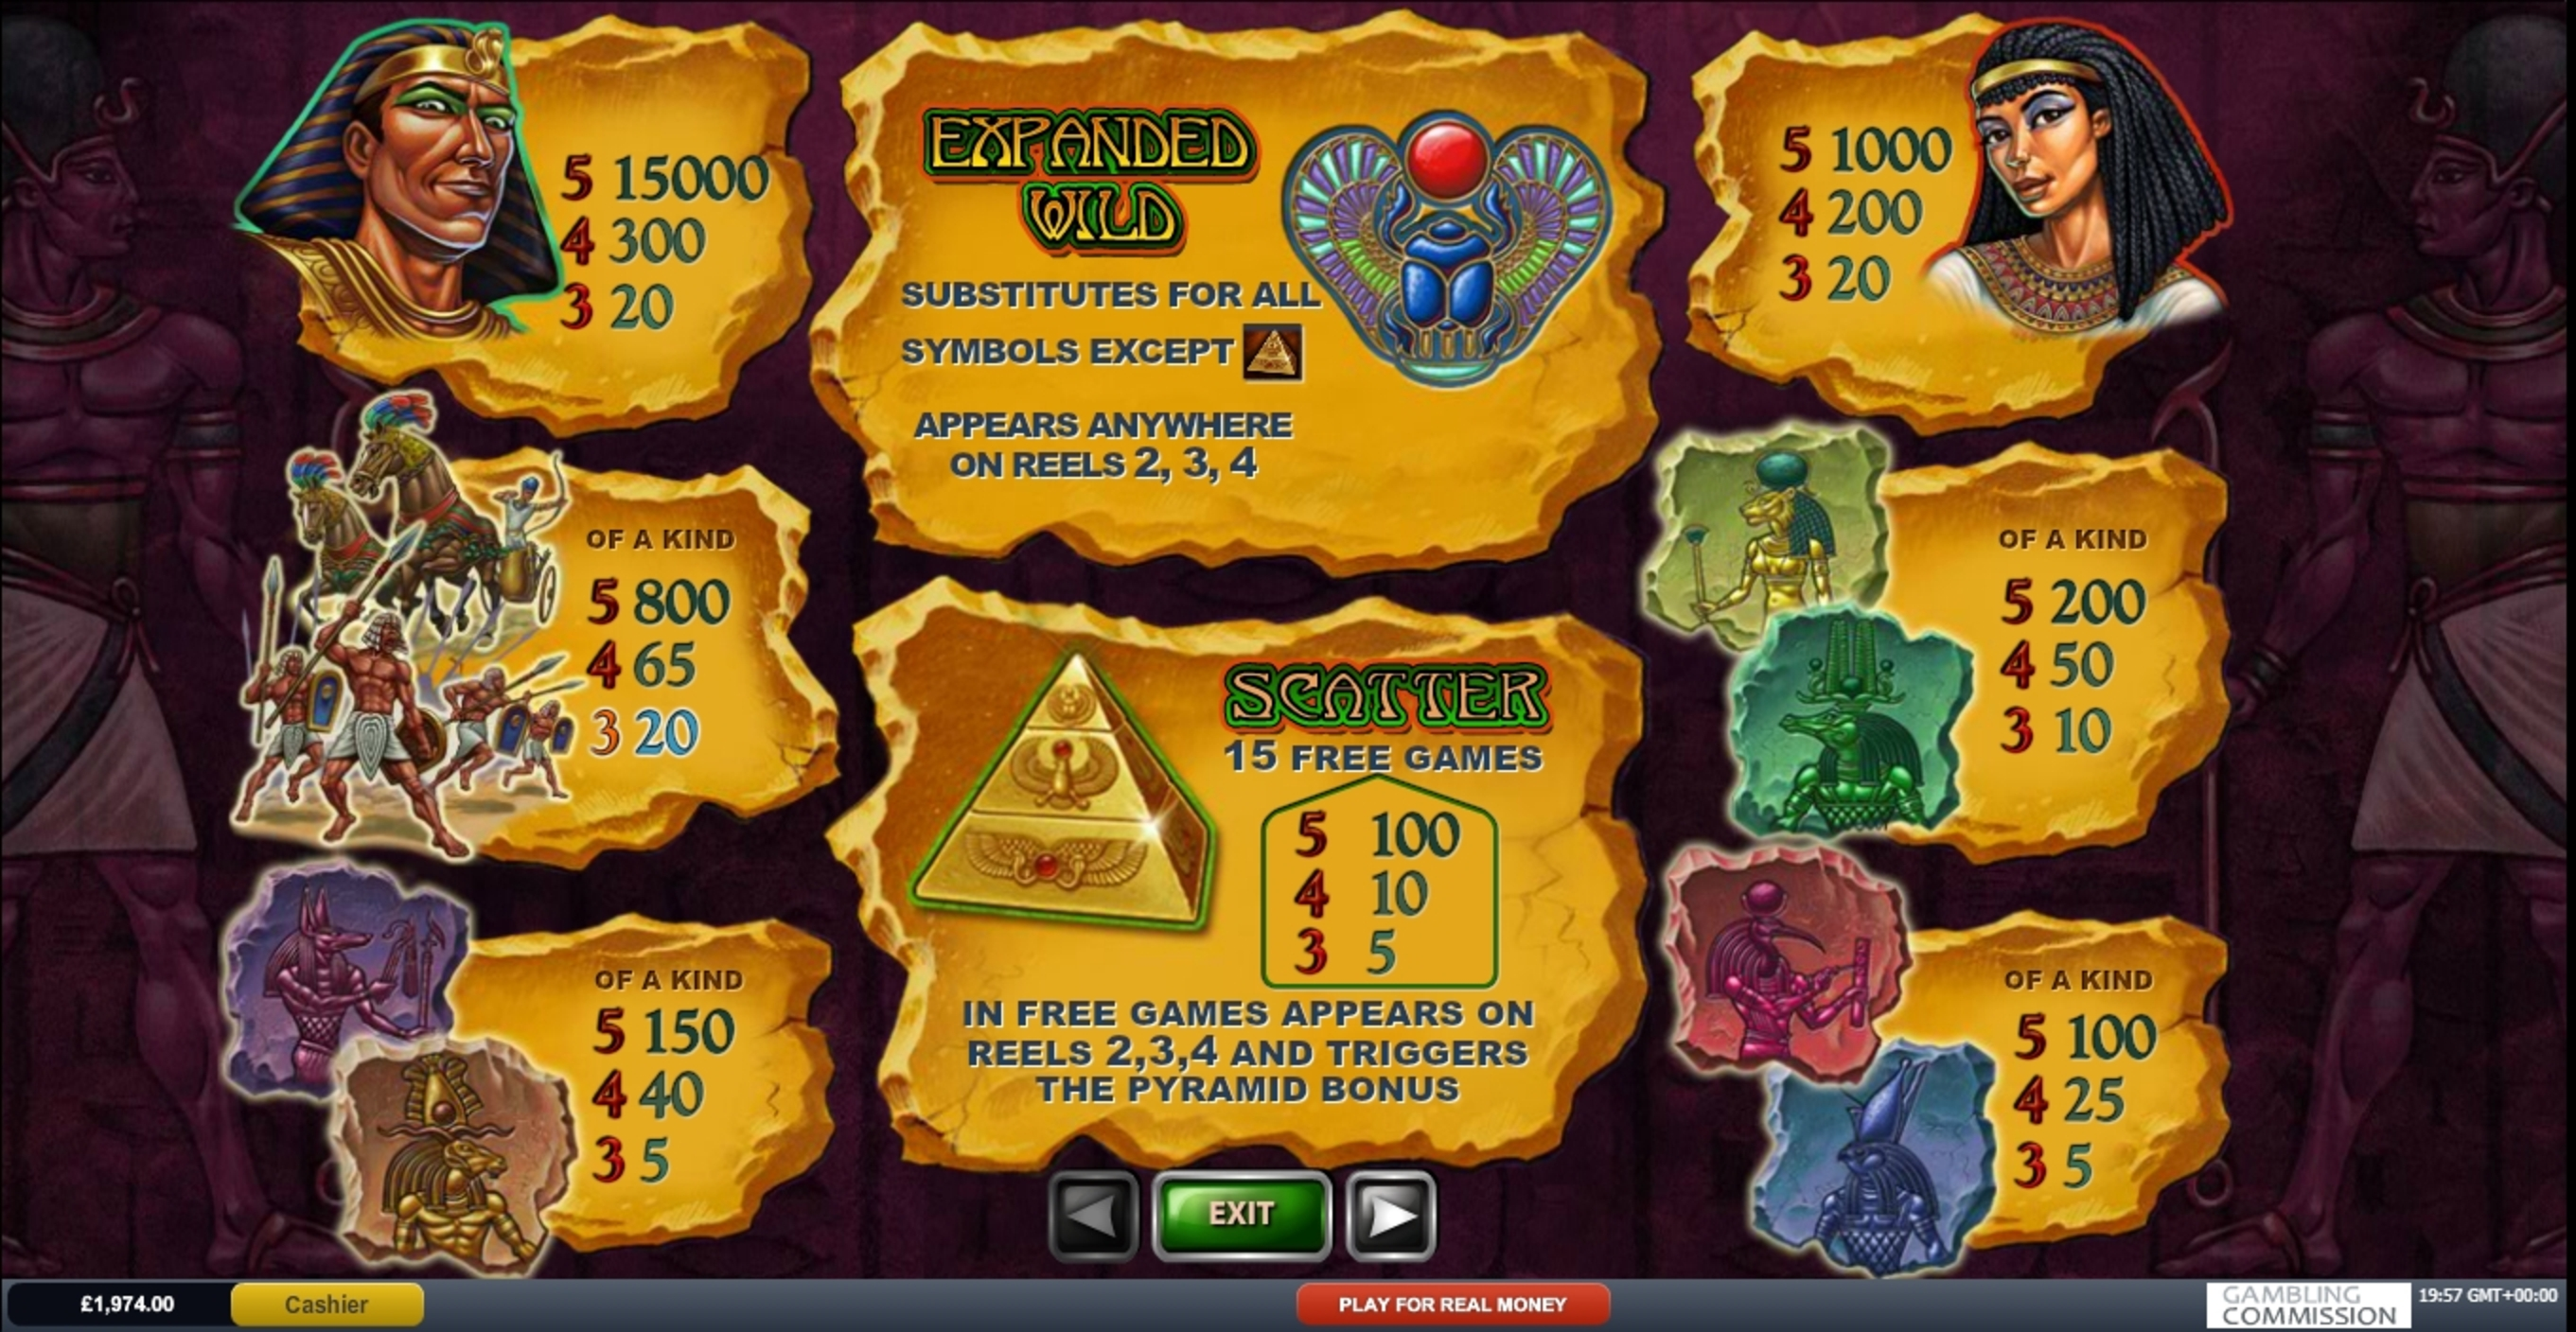 Info of The Pyramid of Ramesses (Playtech) Slot Game by Playtech